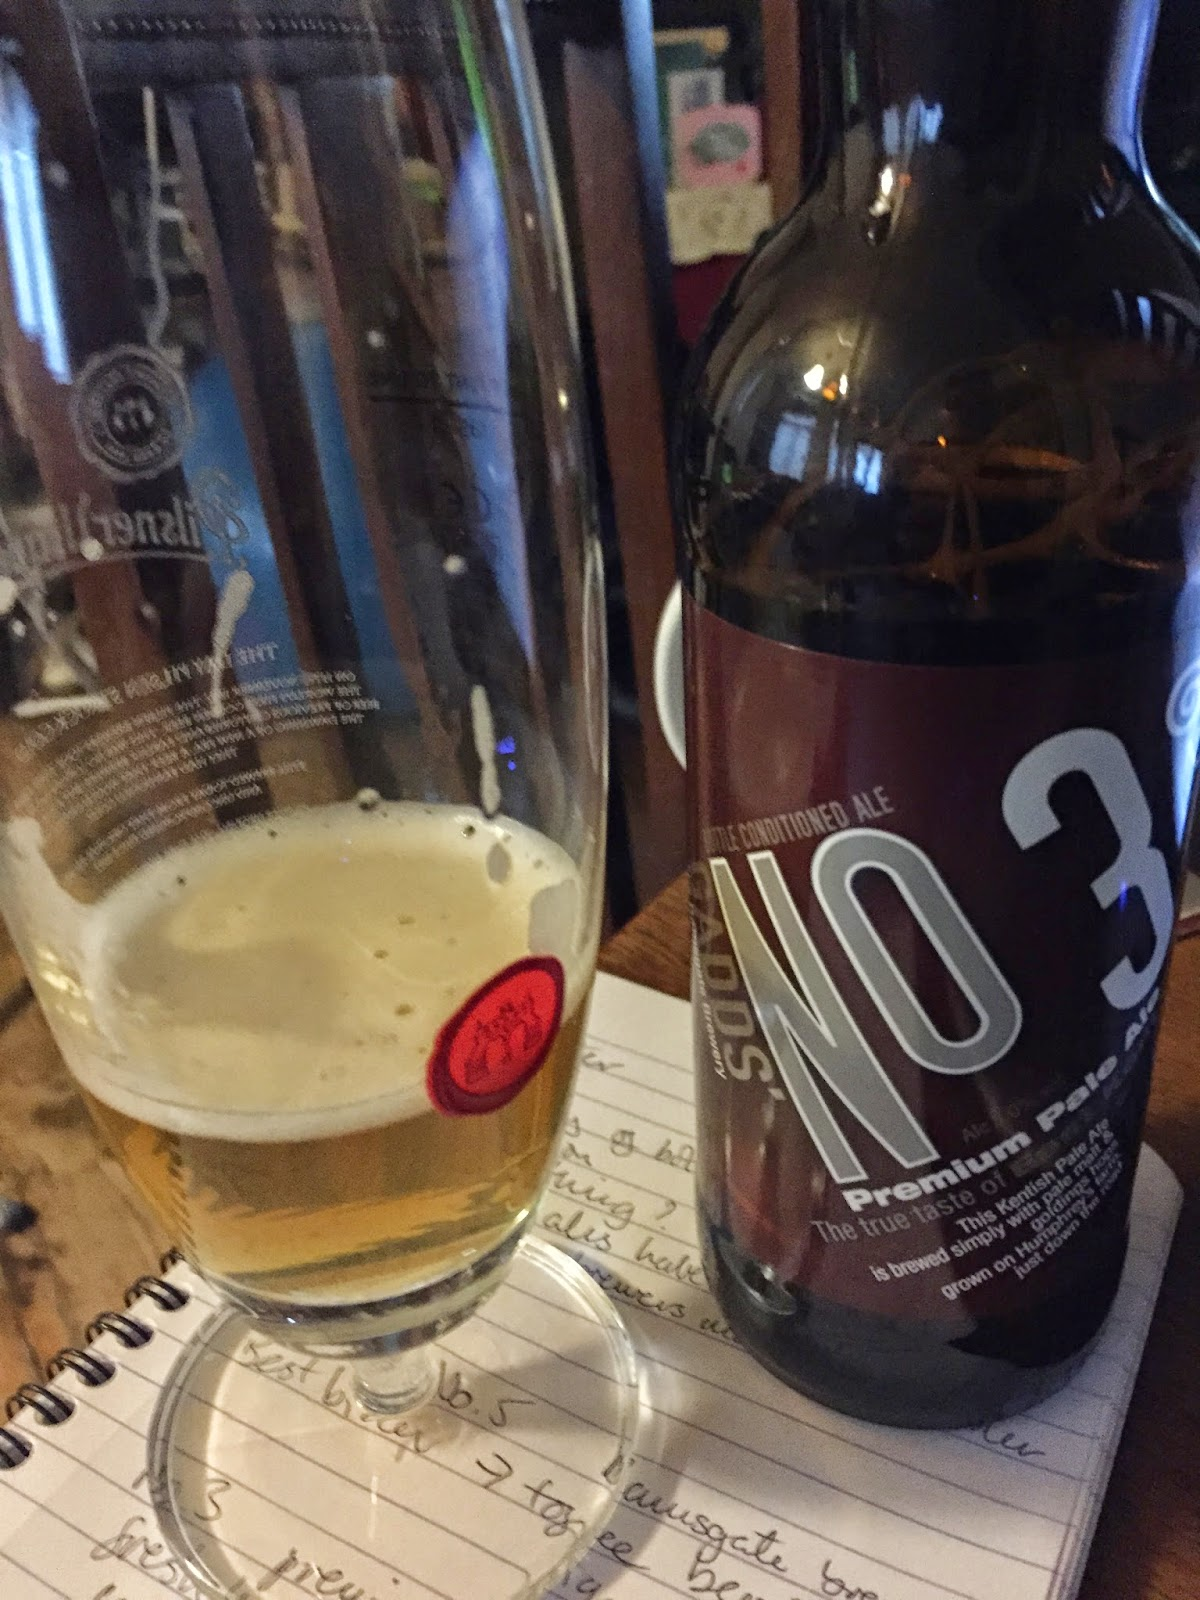 Gadds' No 3 pale ale (5%)